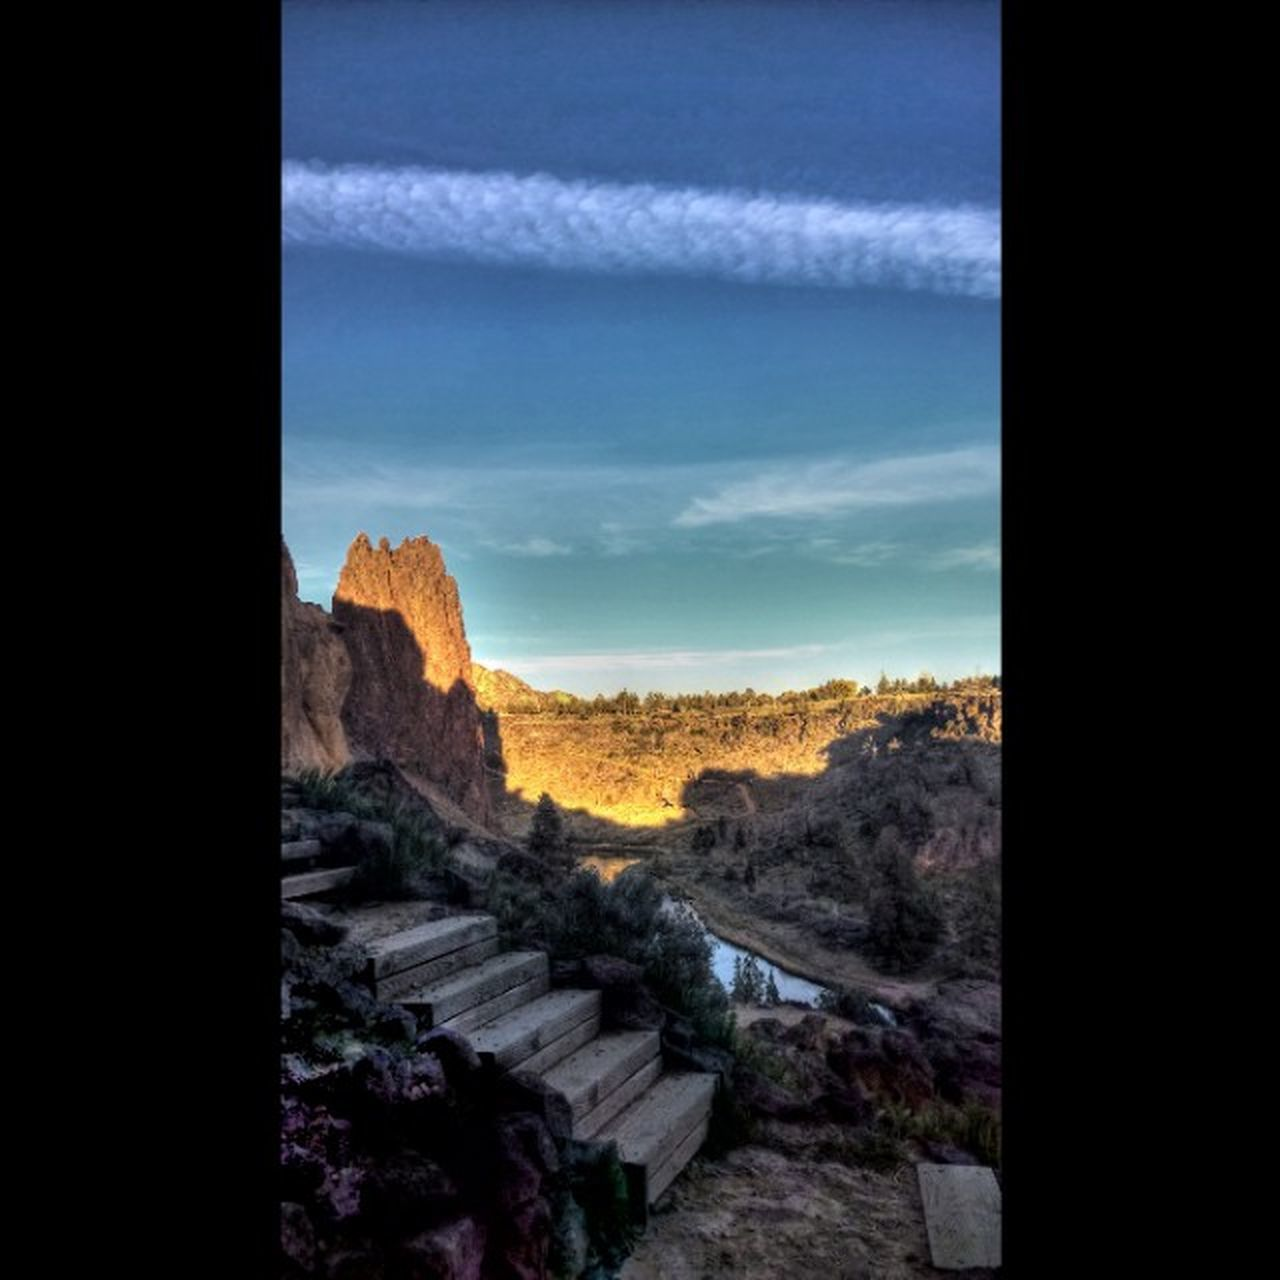 Smith from cinnamon slabs SmithRockStatePark Climb Climbing RockClimbing Climbing_pictures_of_instagram Natgeo HDR_Landscapes HDR Landscapes New Love Getoutdoors Greettheoutdoors HDR_Landscapes Reiproject1440 PNW Pacificnorthwest Exploregon ExploreEverything Adventure Insta Instagood Follow Lumia Lumiaphotography lumialove choosemountains shotonmylumia myawaycontest